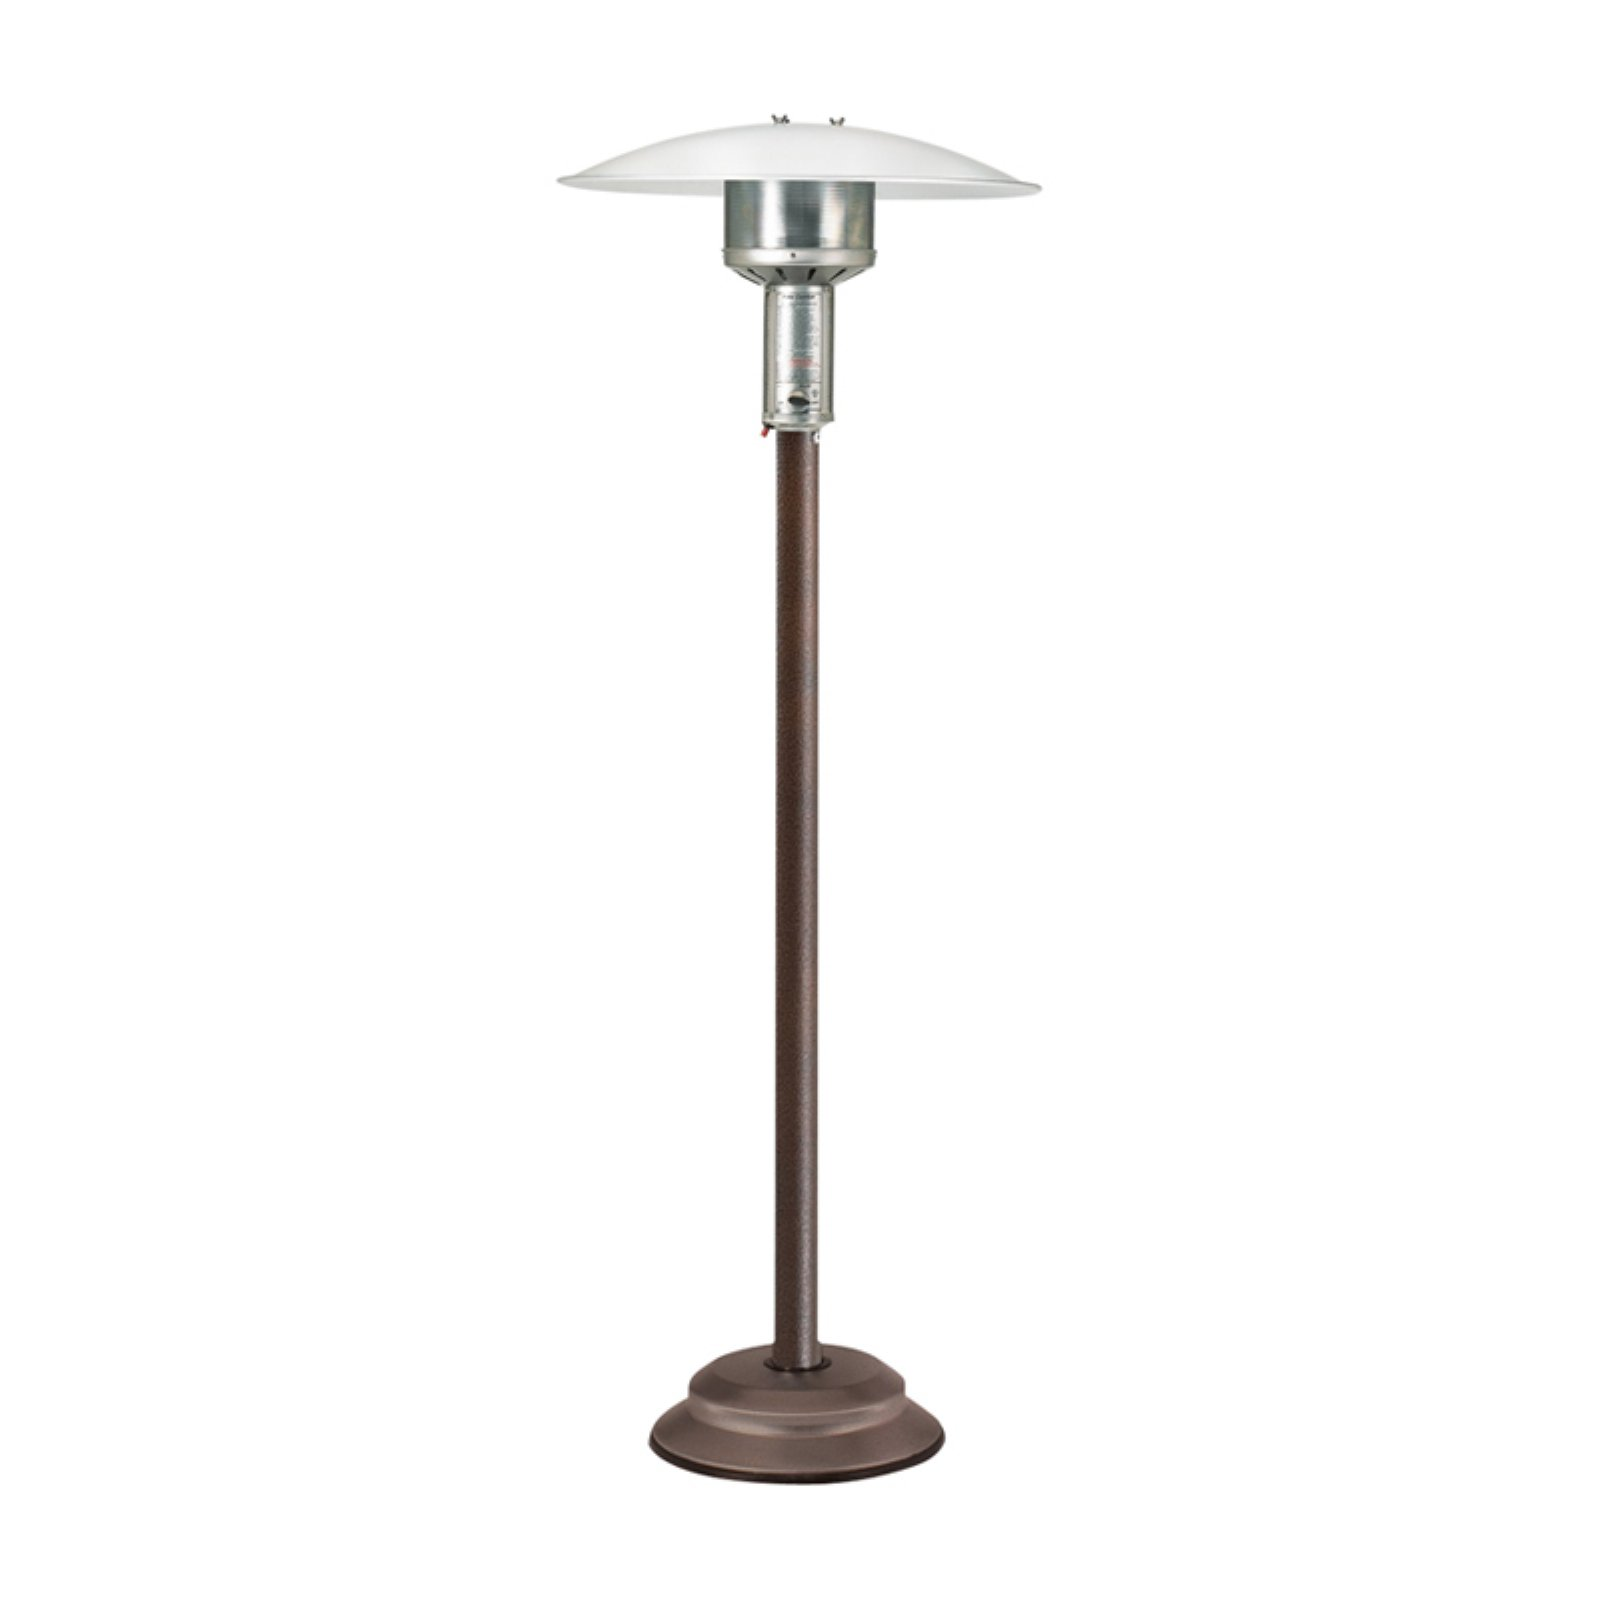 Patio Comfort Antique Bronze Patio Heater by AEI Corporation